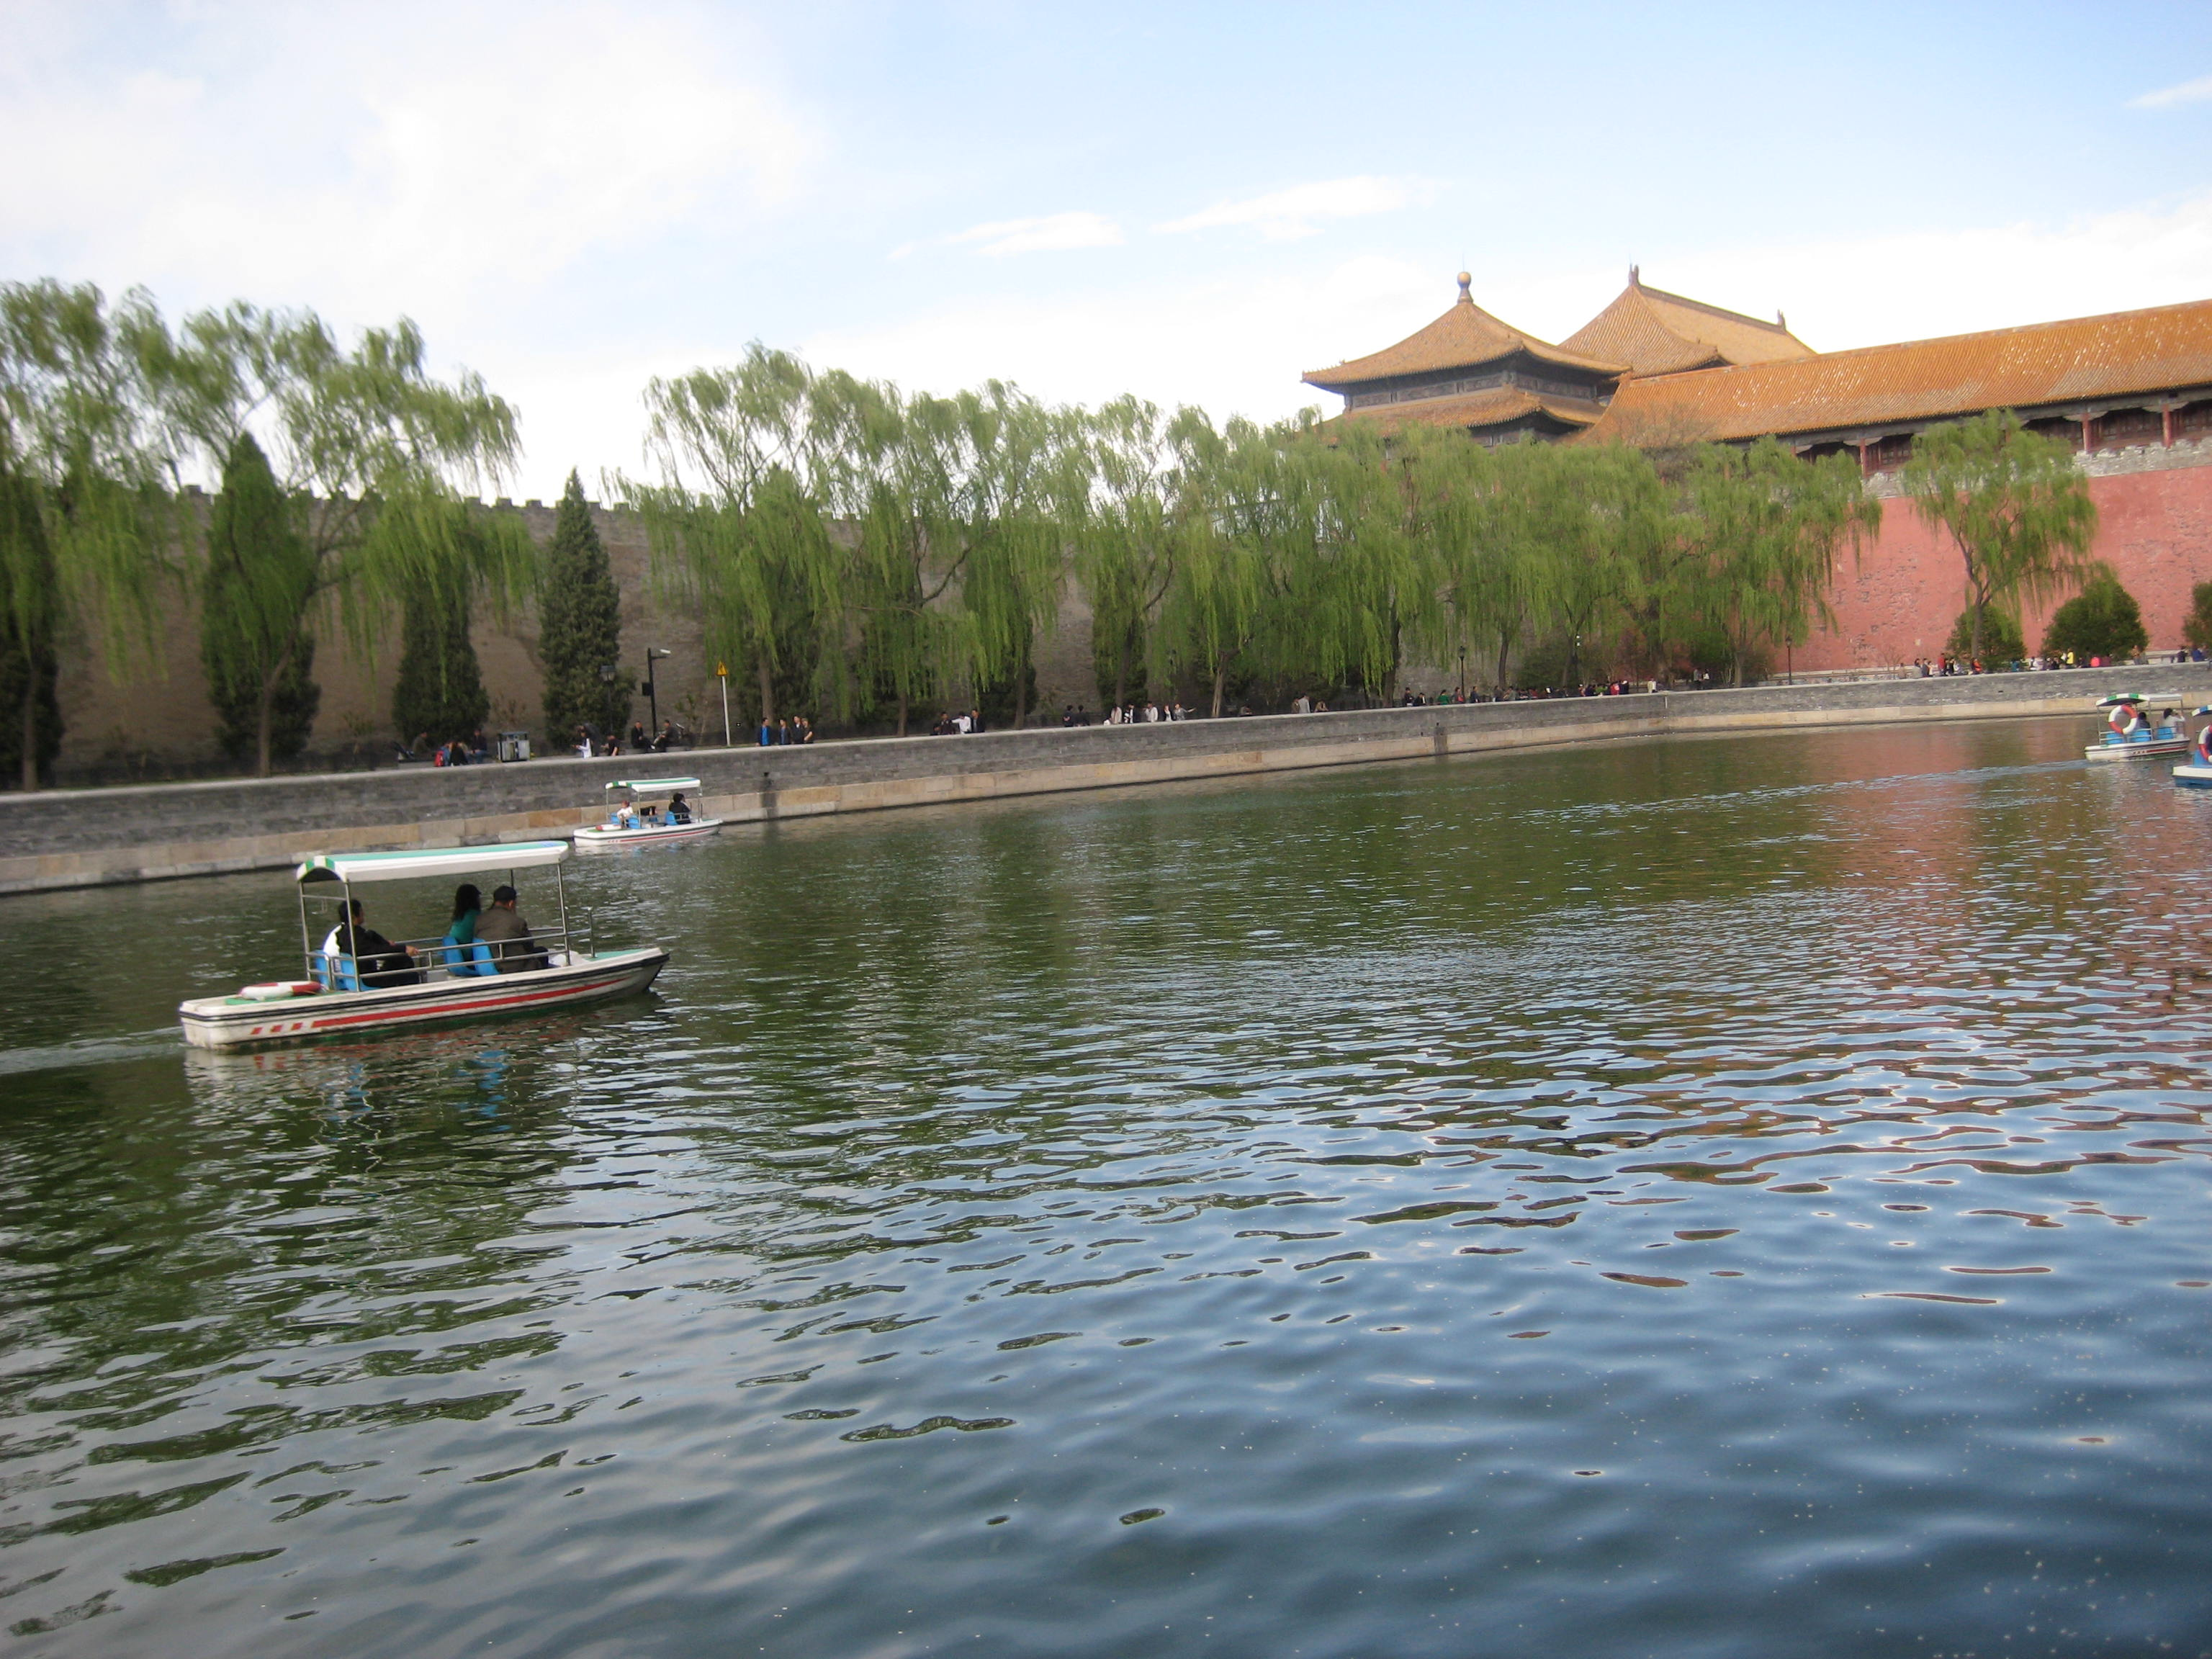 Looking for Love (Again) in Beijing